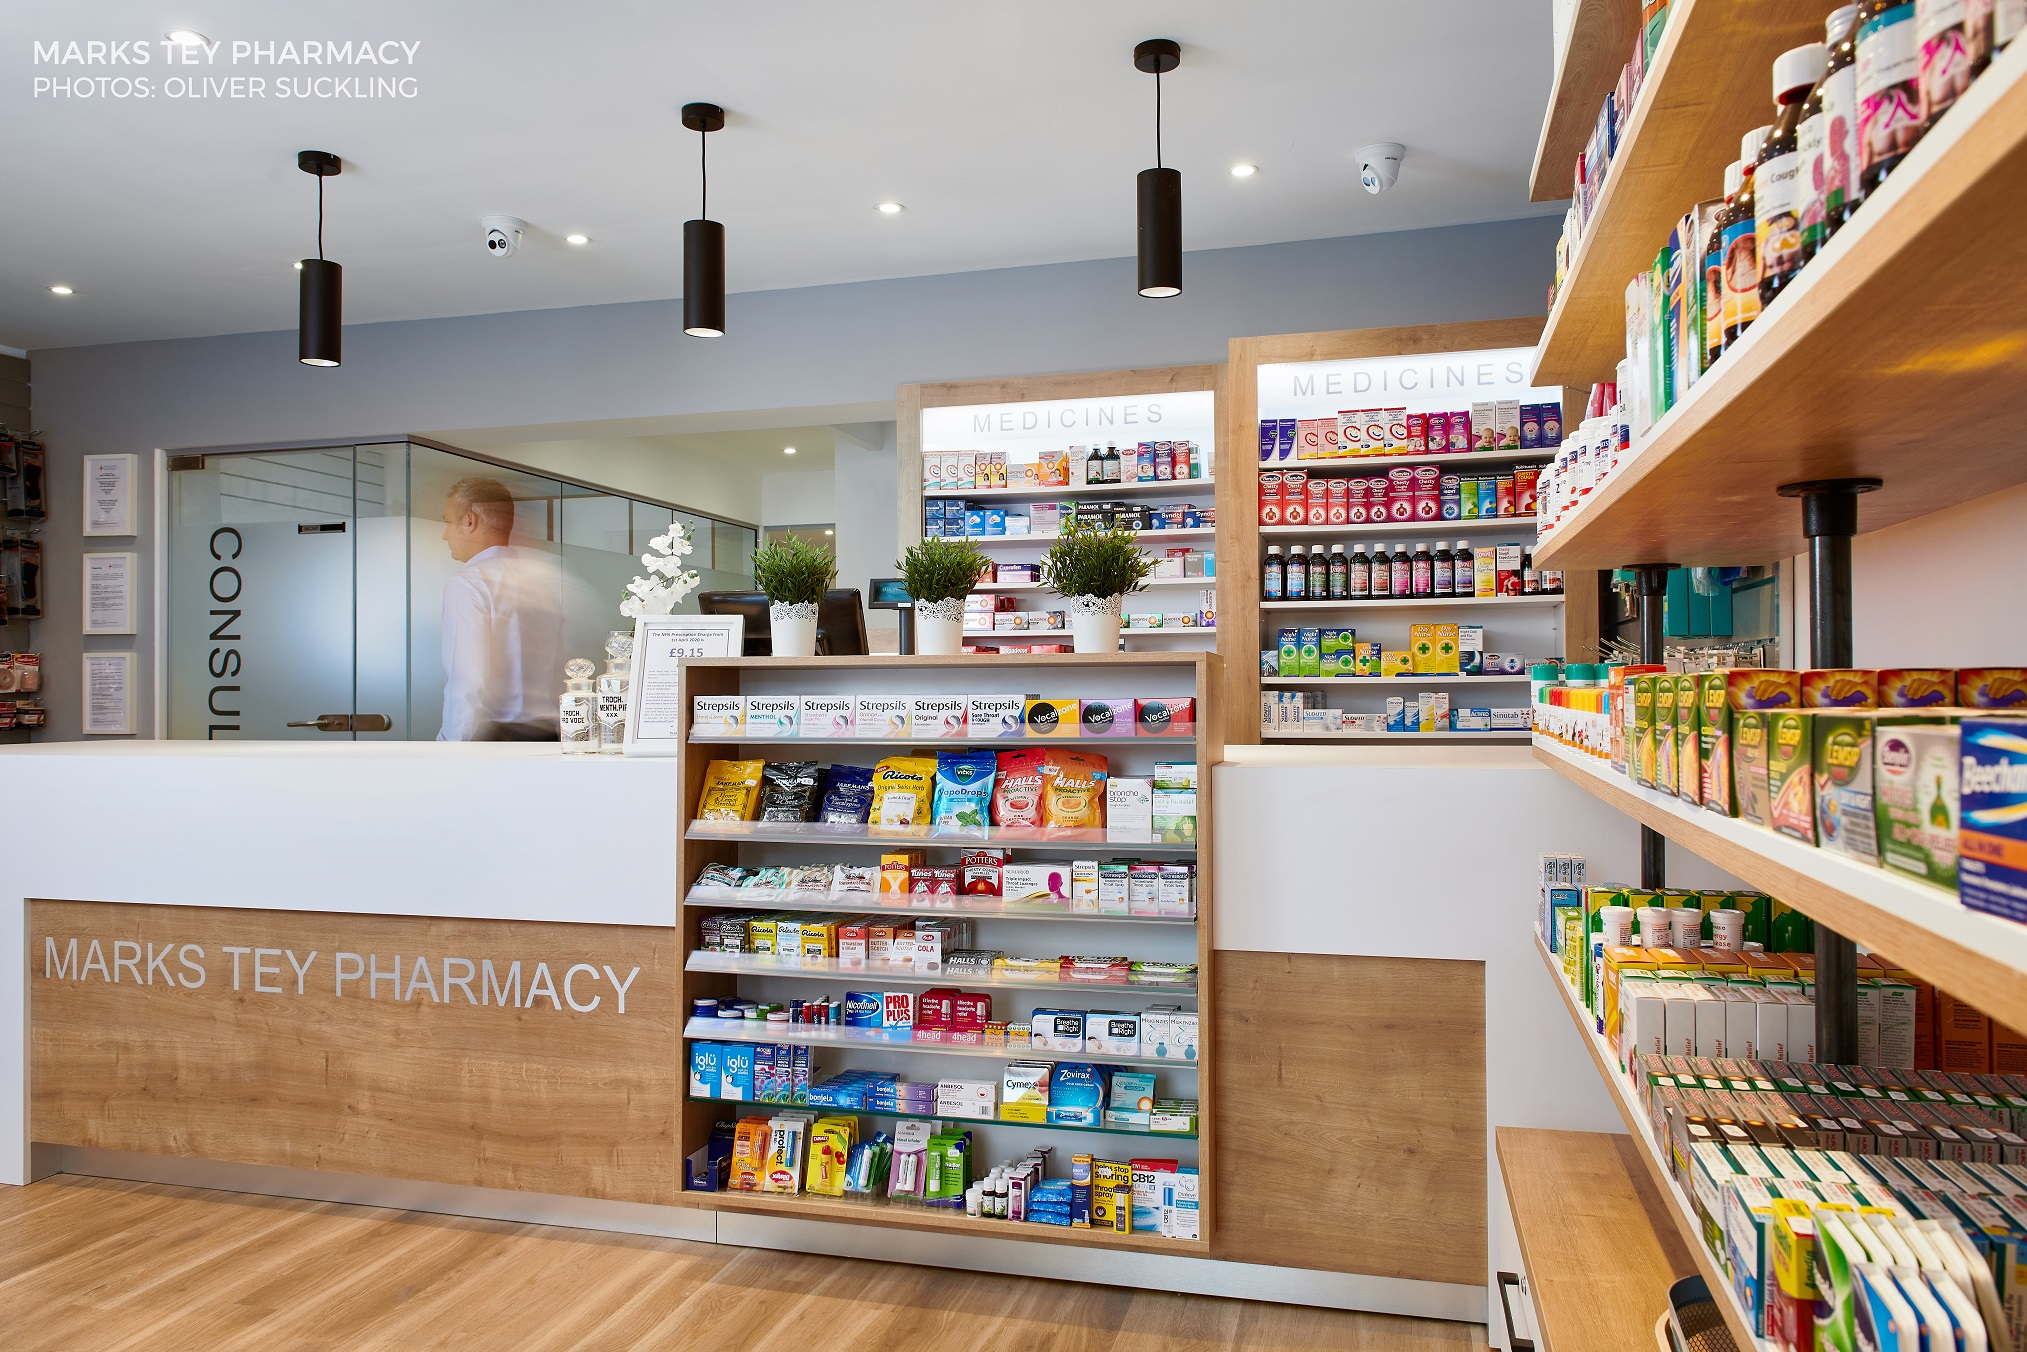 MarksTeyPharmacy_July2020-0291_front 2